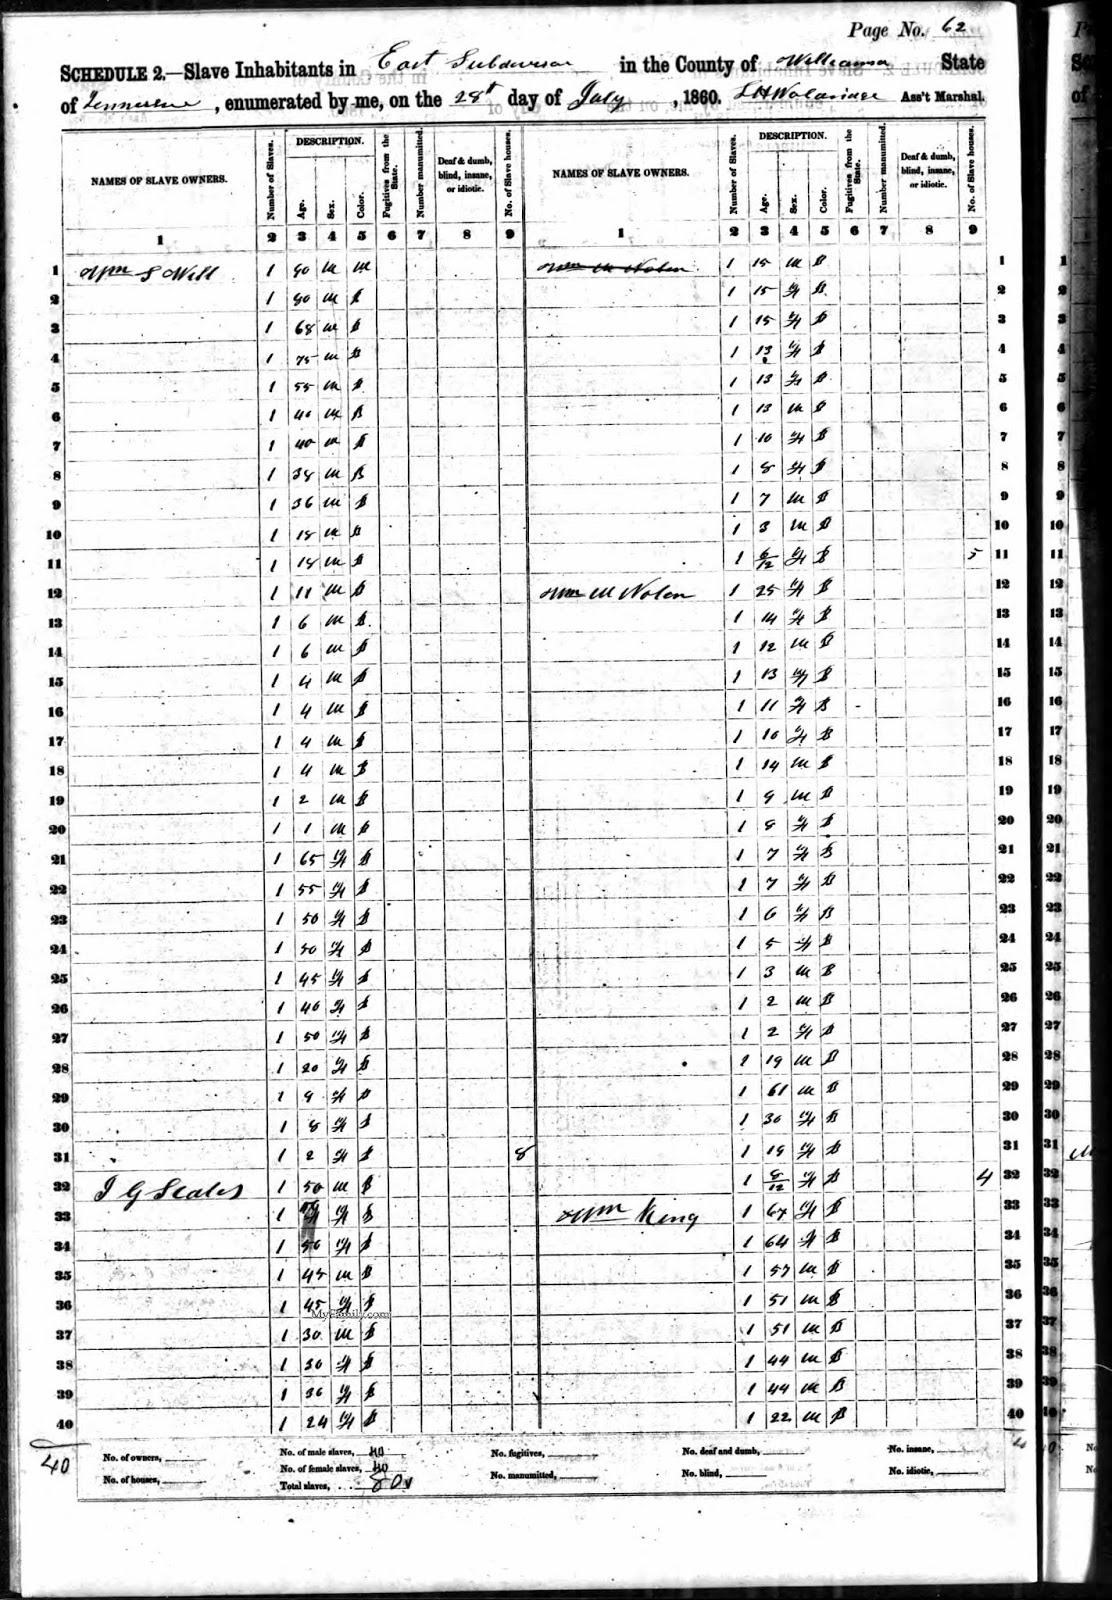 a 15 year old male slave appears in j g scales 1860 slave schedule who could be granville scales if he was owned by mr scales granville likely grew up